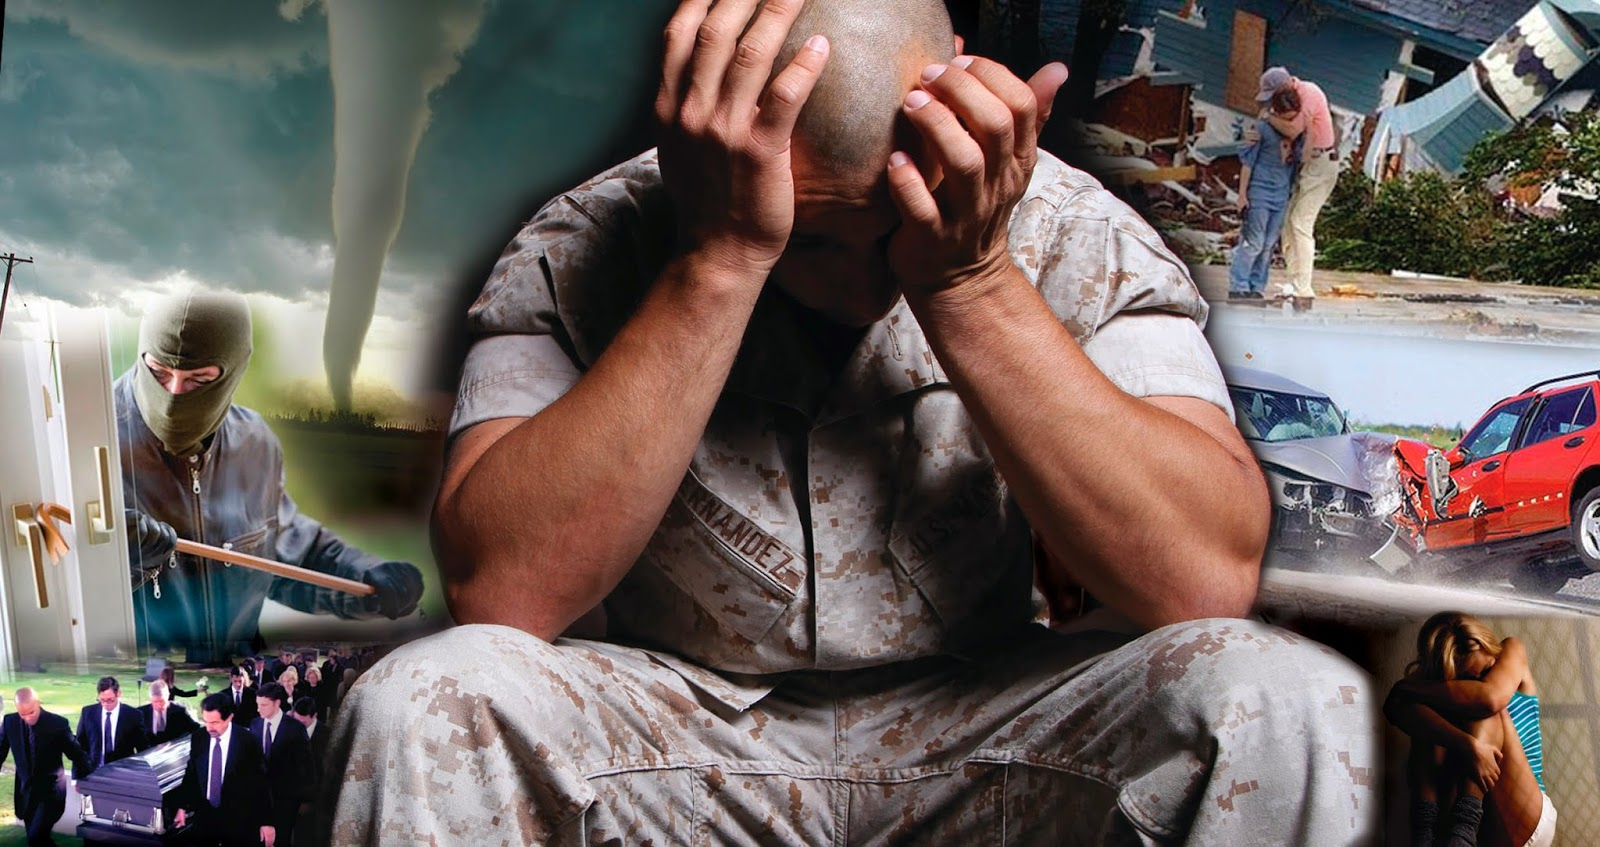 Michigan medical marijuana report ptsd the mmmp by chelsea shaker by now most people are well aware of post traumatic stress disorder ptsd and acknowledge it as one of the most debilitating conditions someone can have 1betcityfo Images